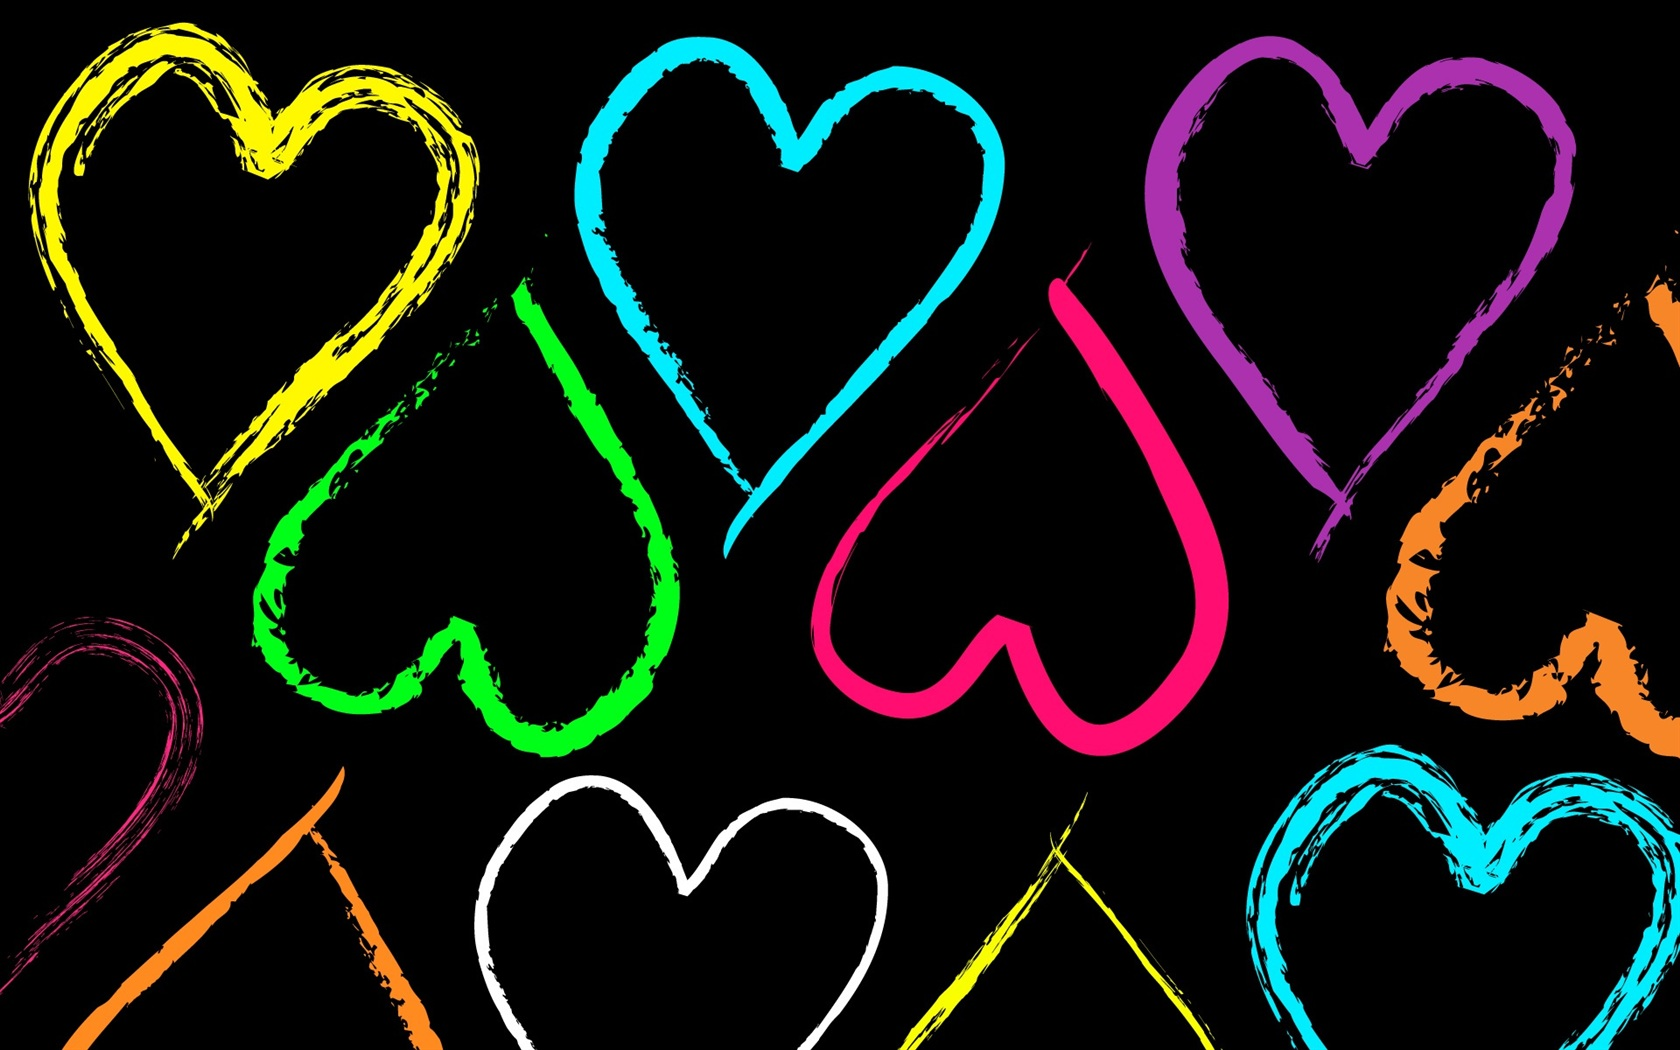 Colorful hearts and shapes wallpaper | Wallpaper Wide HD